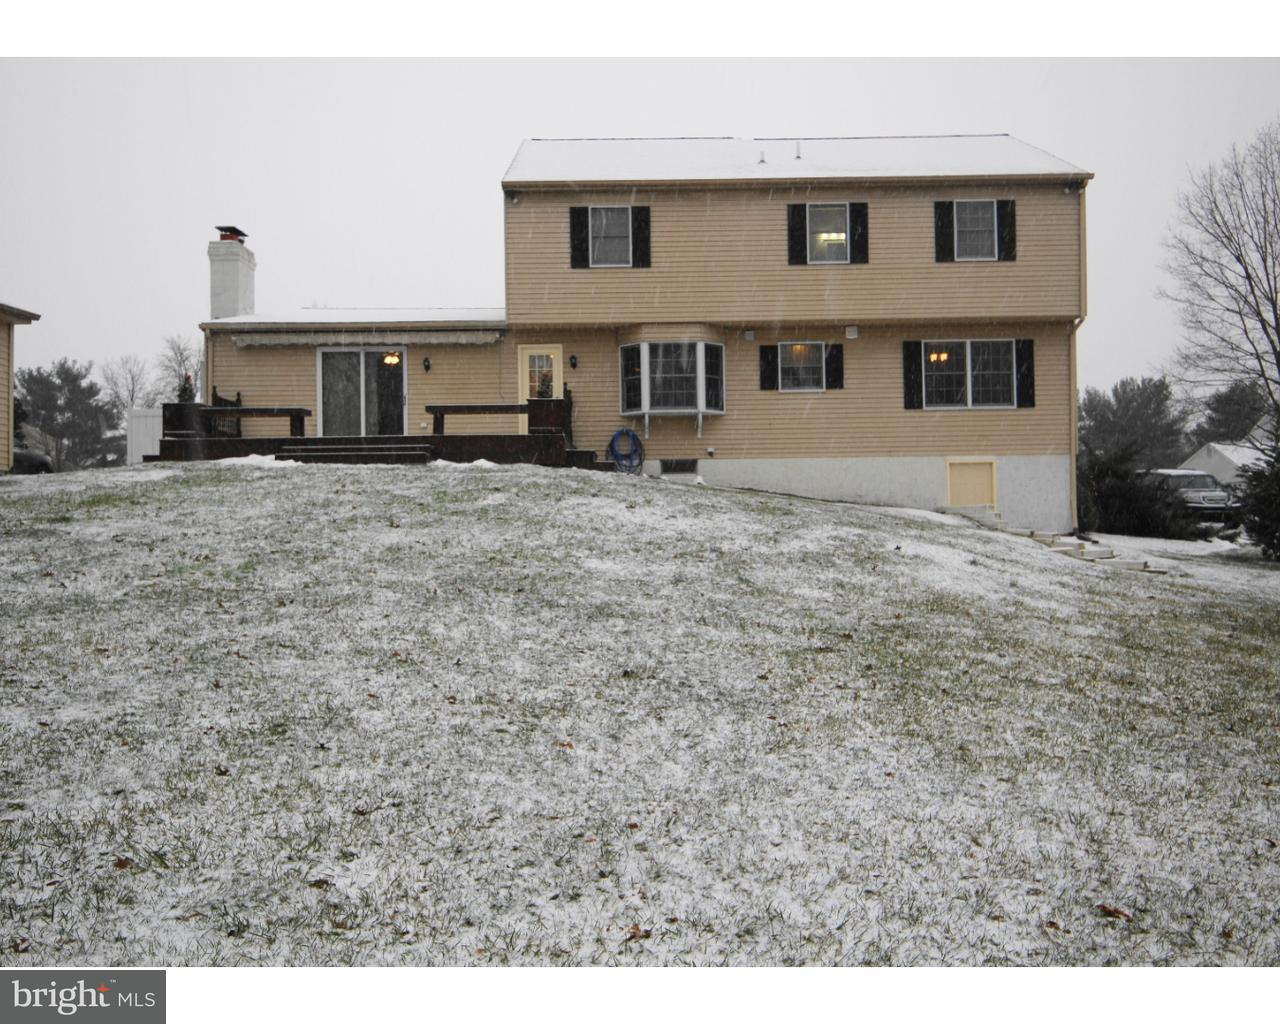 2040 SPRING VALLEY RD, LANSDALE - Listed at $459,000, LANSDALE